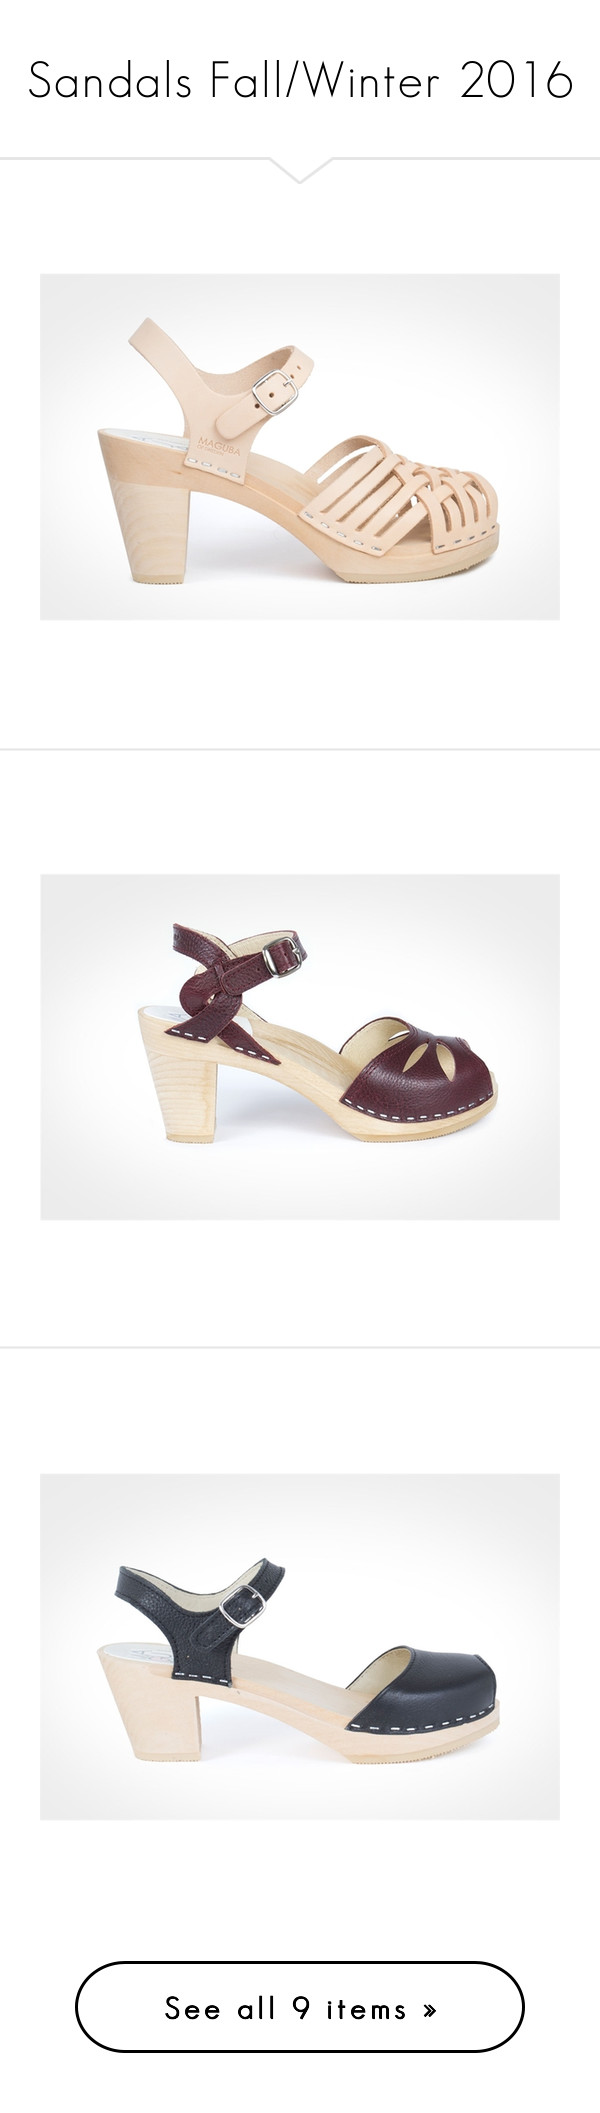 """""""Sandals Fall/Winter 2016"""" by maguba ❤ liked on Polyvore featuring shoes, genuine leather shoes, ankle wrap shoes, clogs footwear, nude shoes, woven shoes, open toe clogs, maguba, high heel clogs and high heel clogs shoes"""